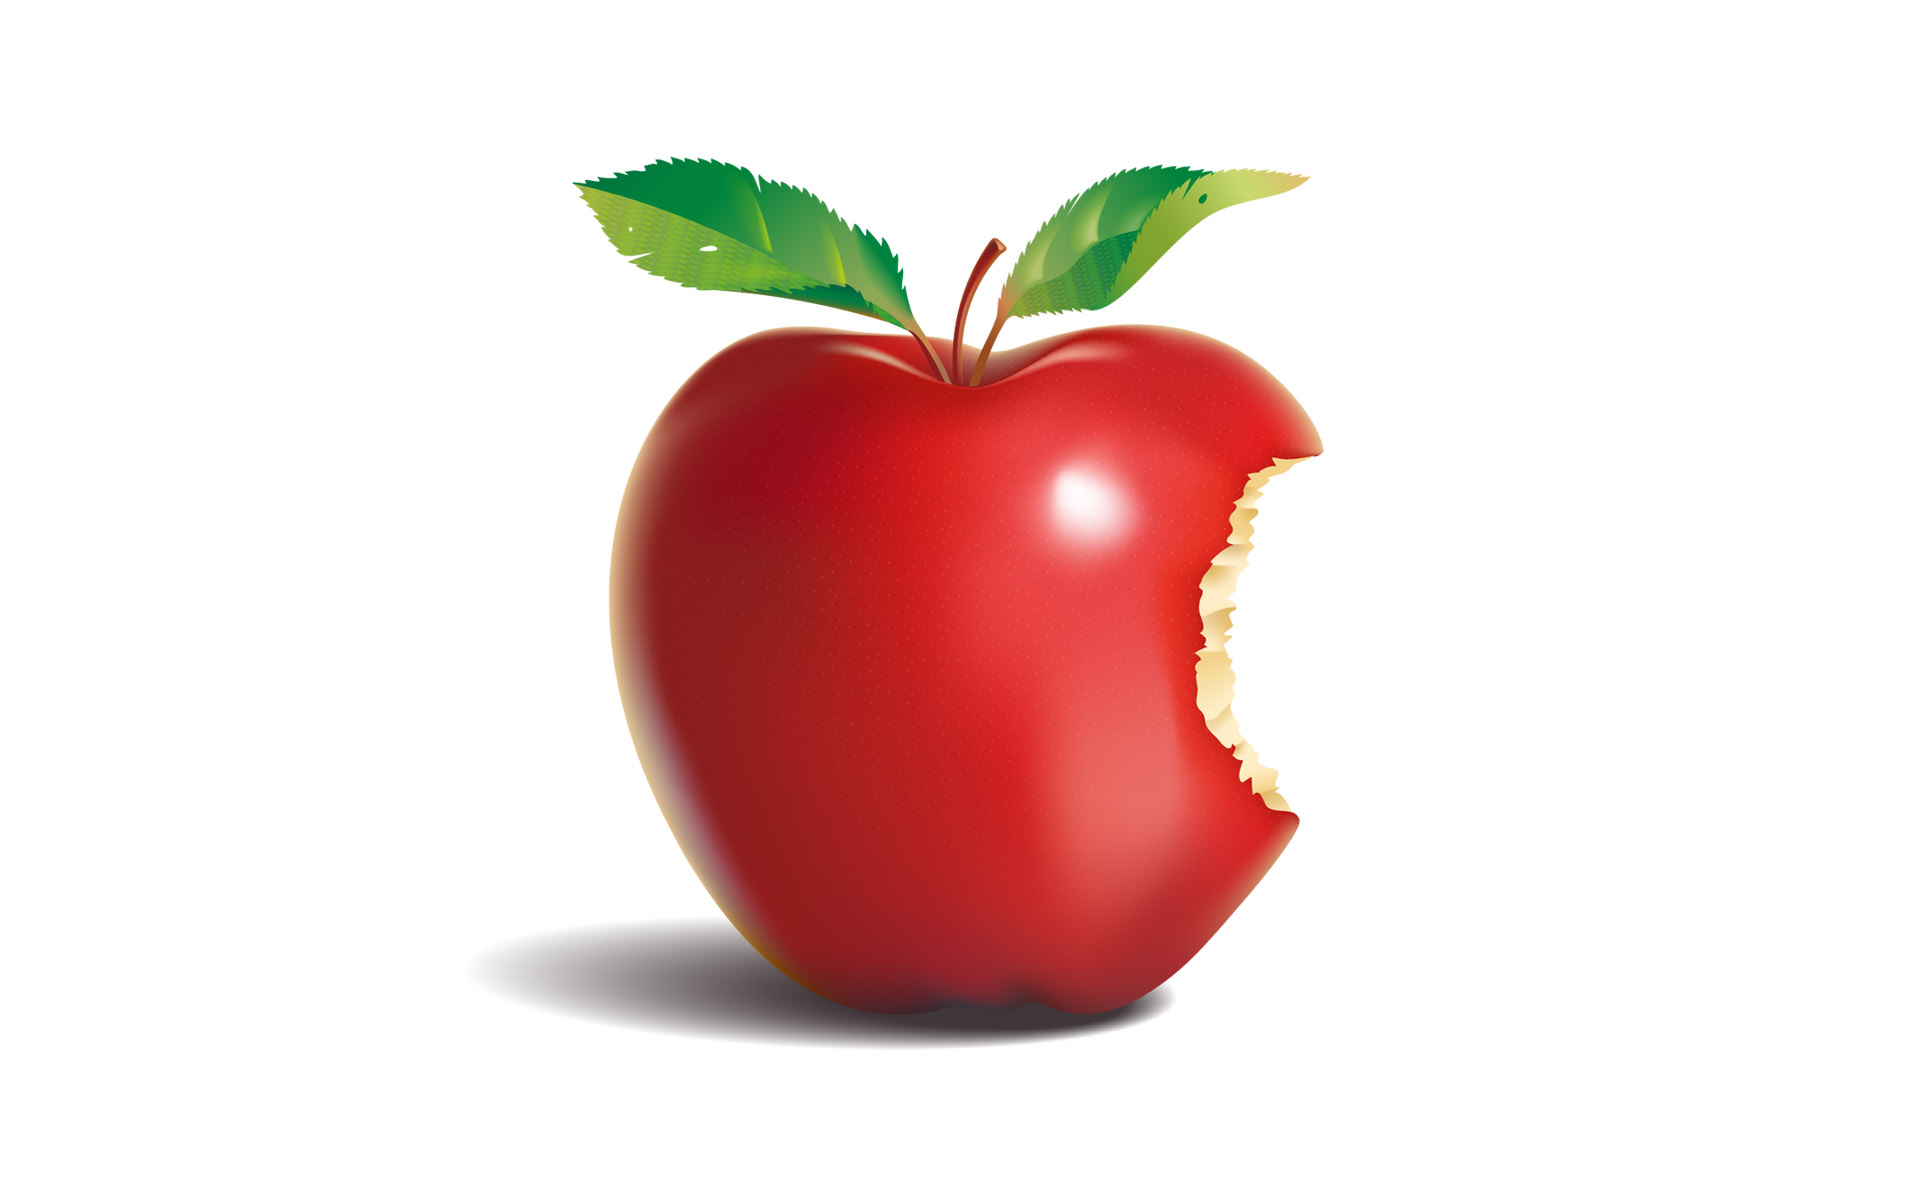 HD Apple wallpaper 19631